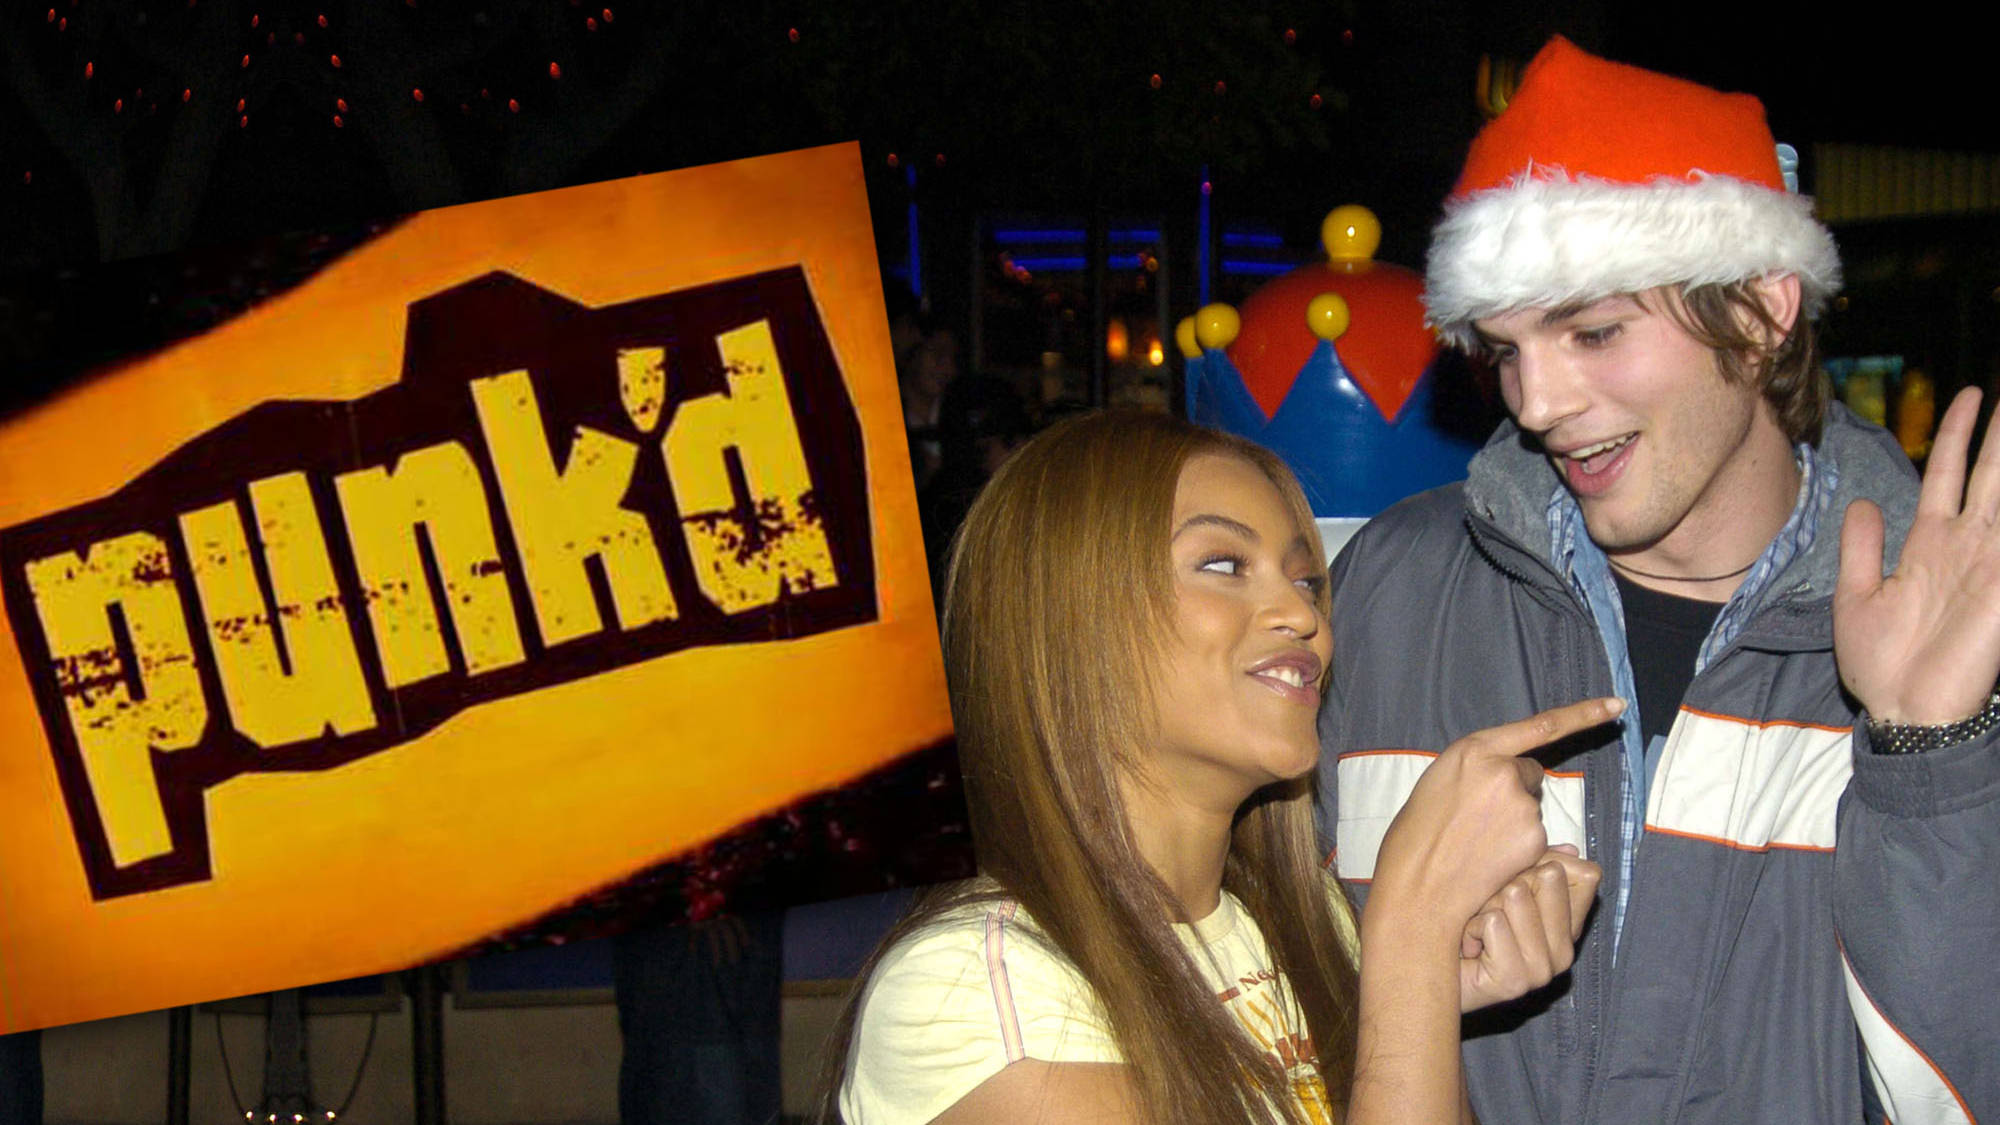 MTV's Punk'd is coming back for a brand new series